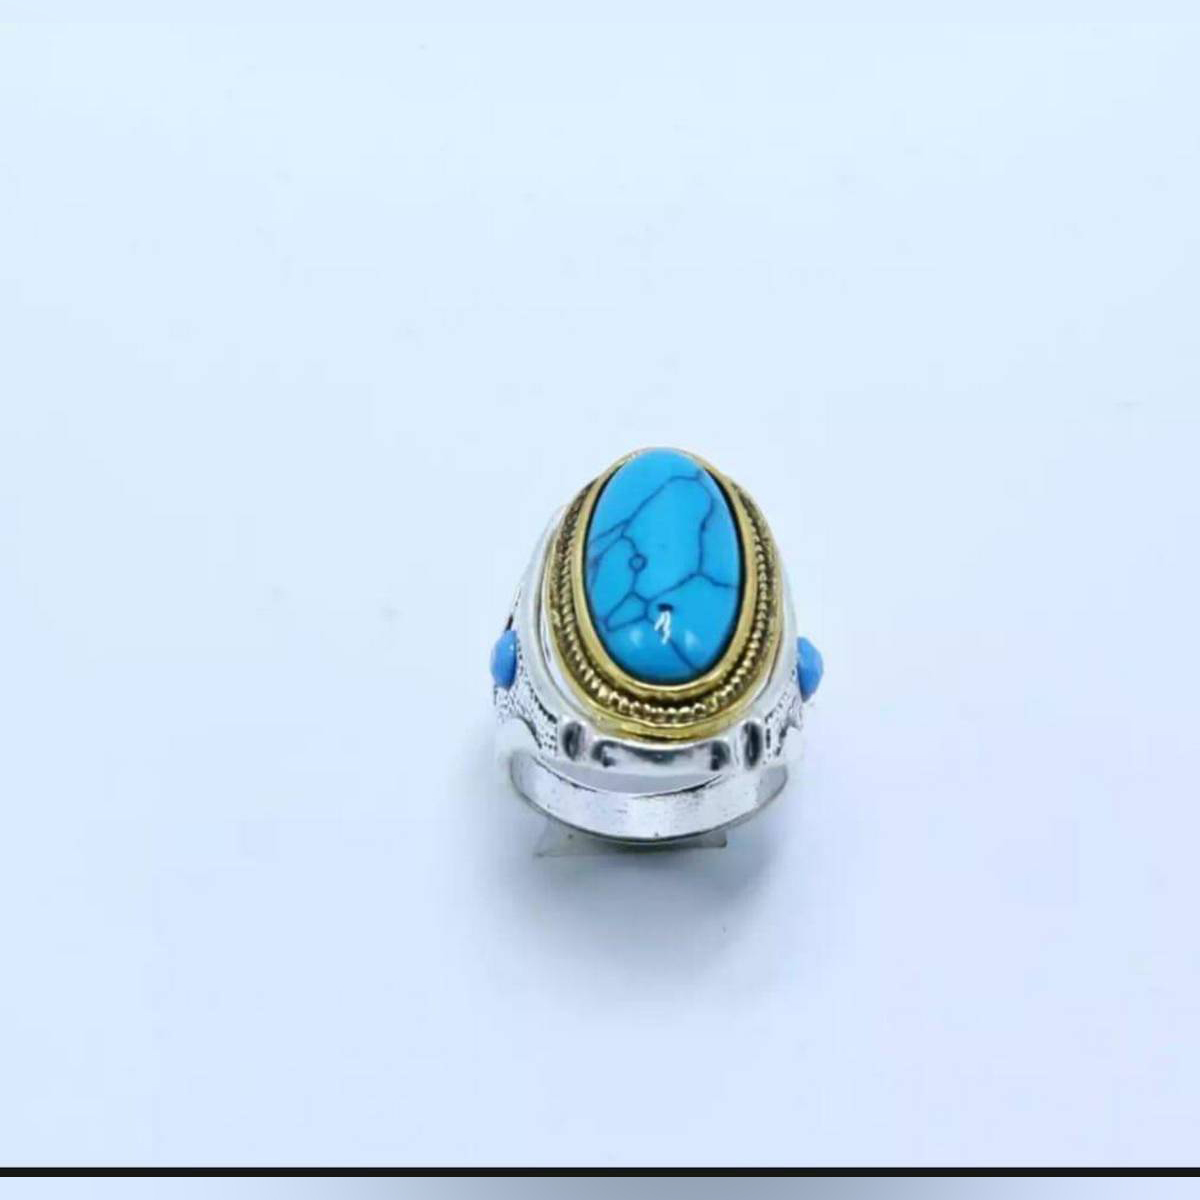 Feroza Latest Turkish Punk Rock Style beautiful Ring antique for men women boys top rated trend 2019